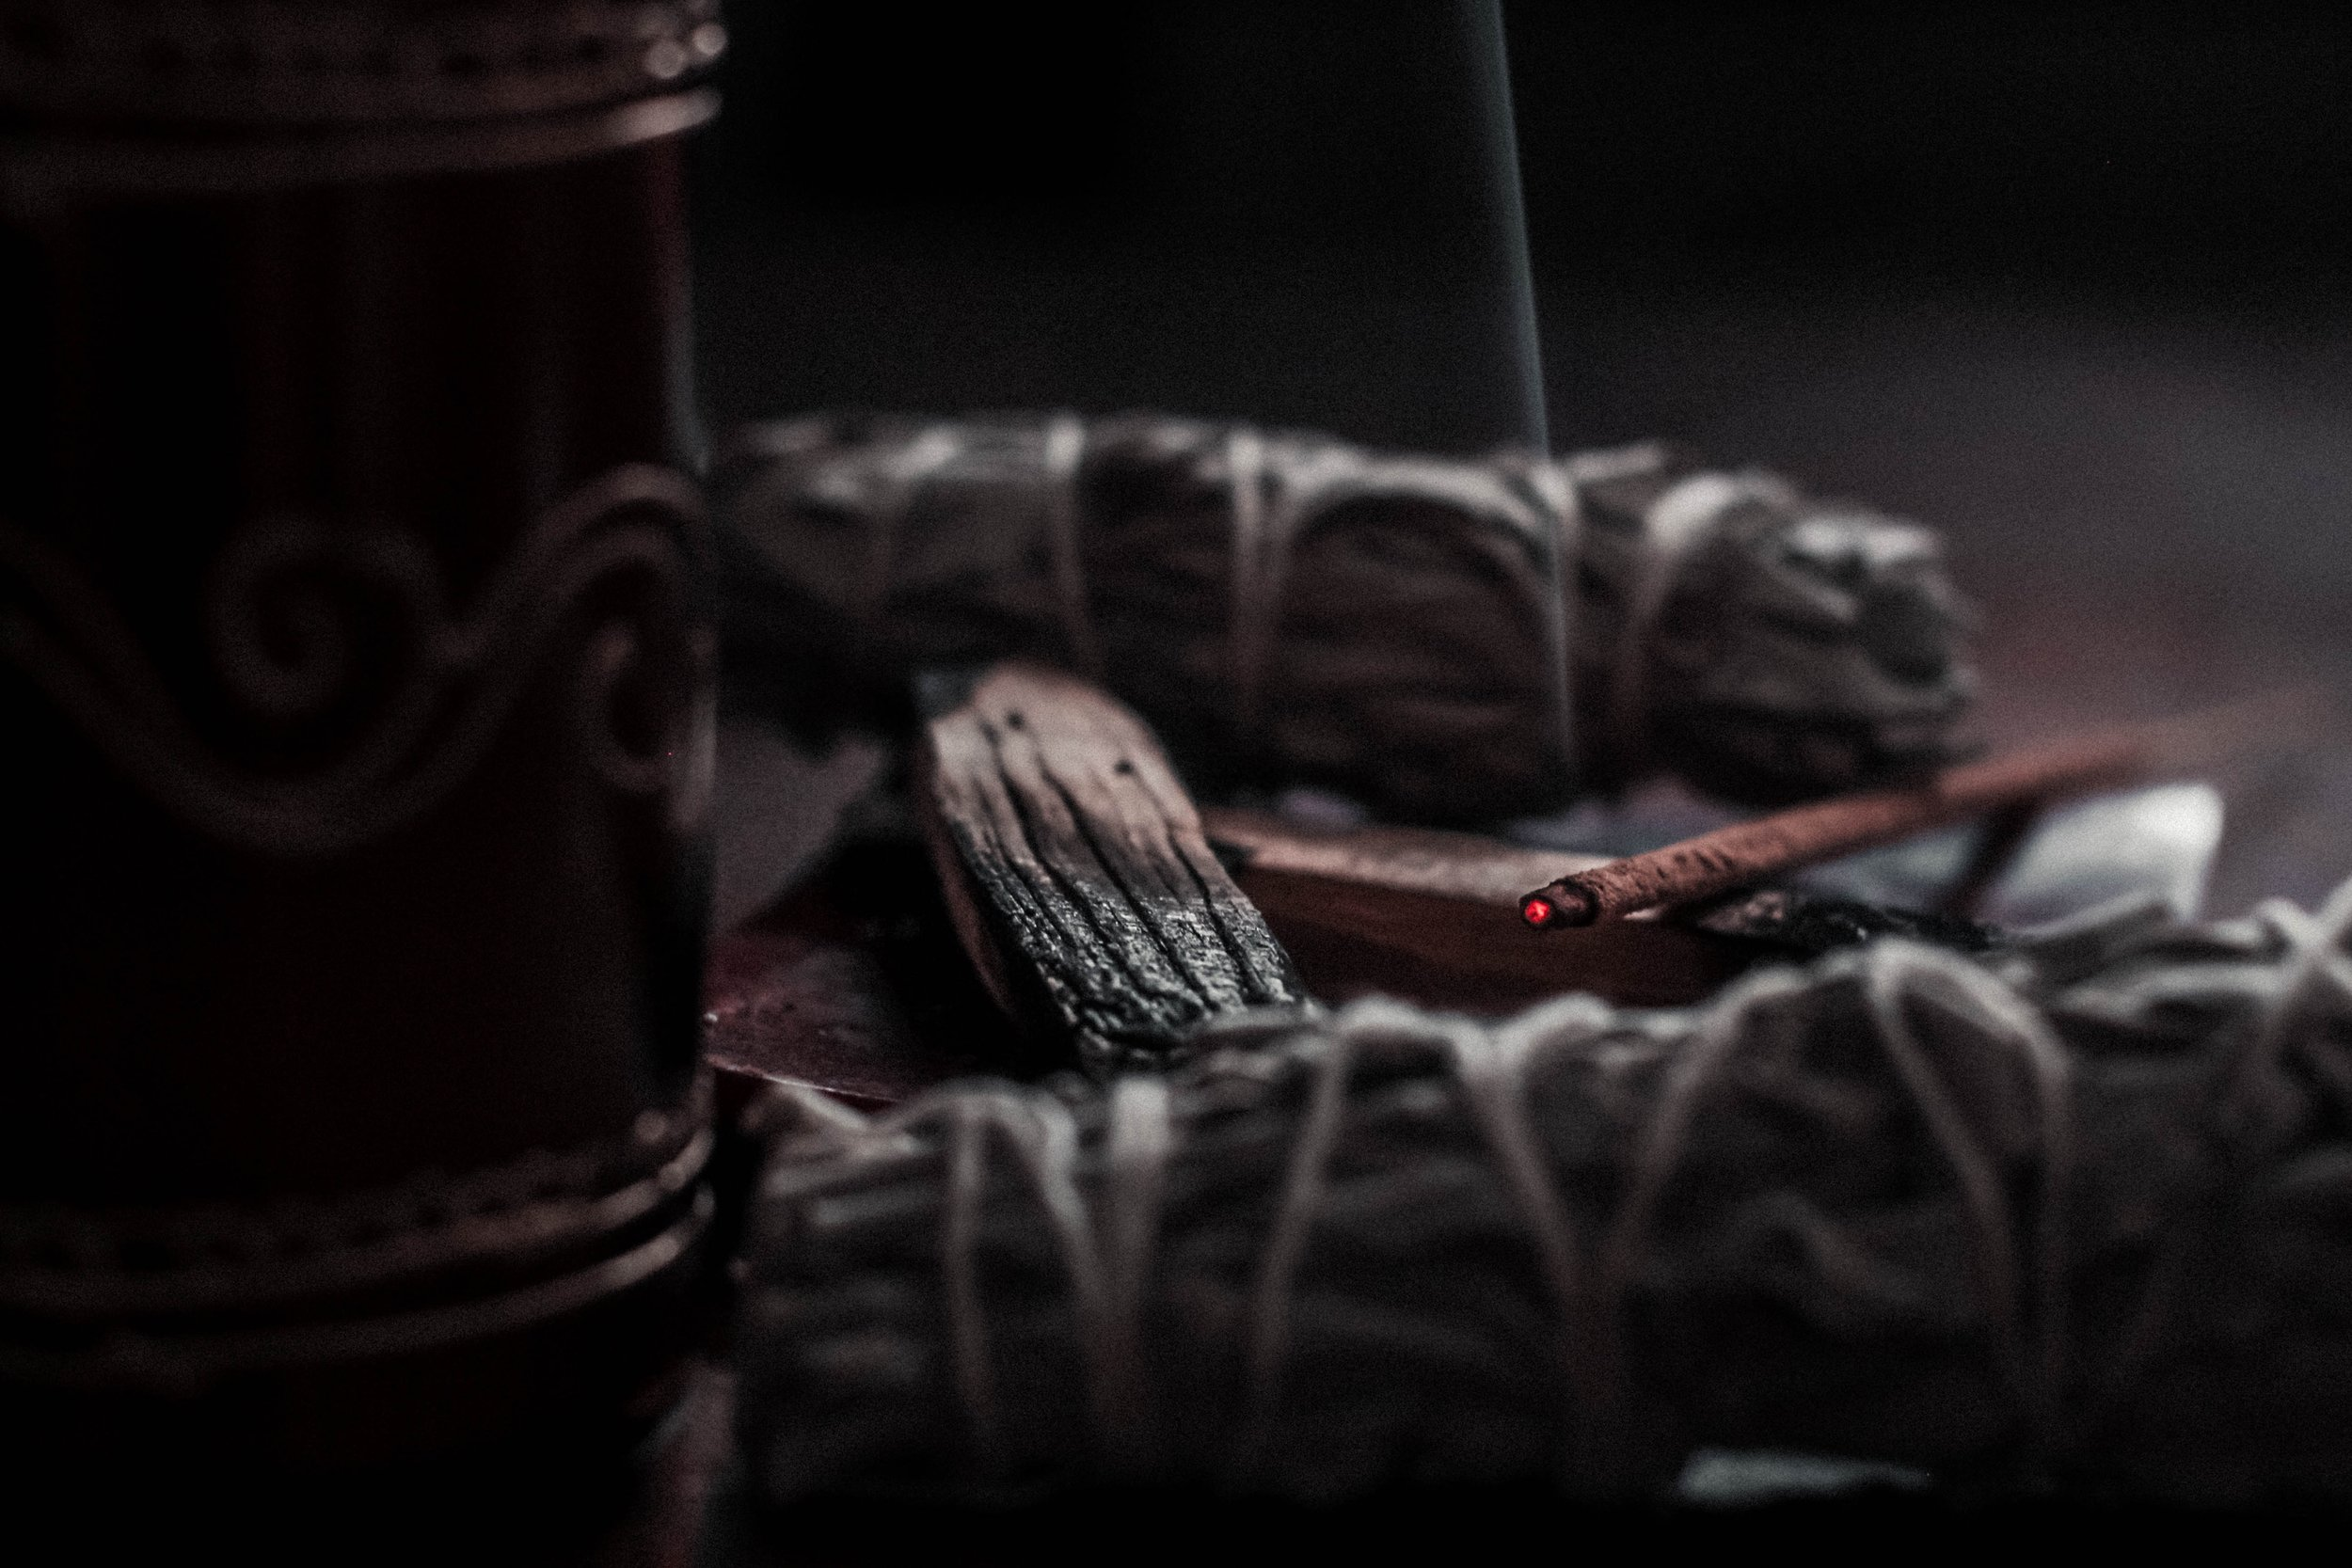 Herbs and Incense